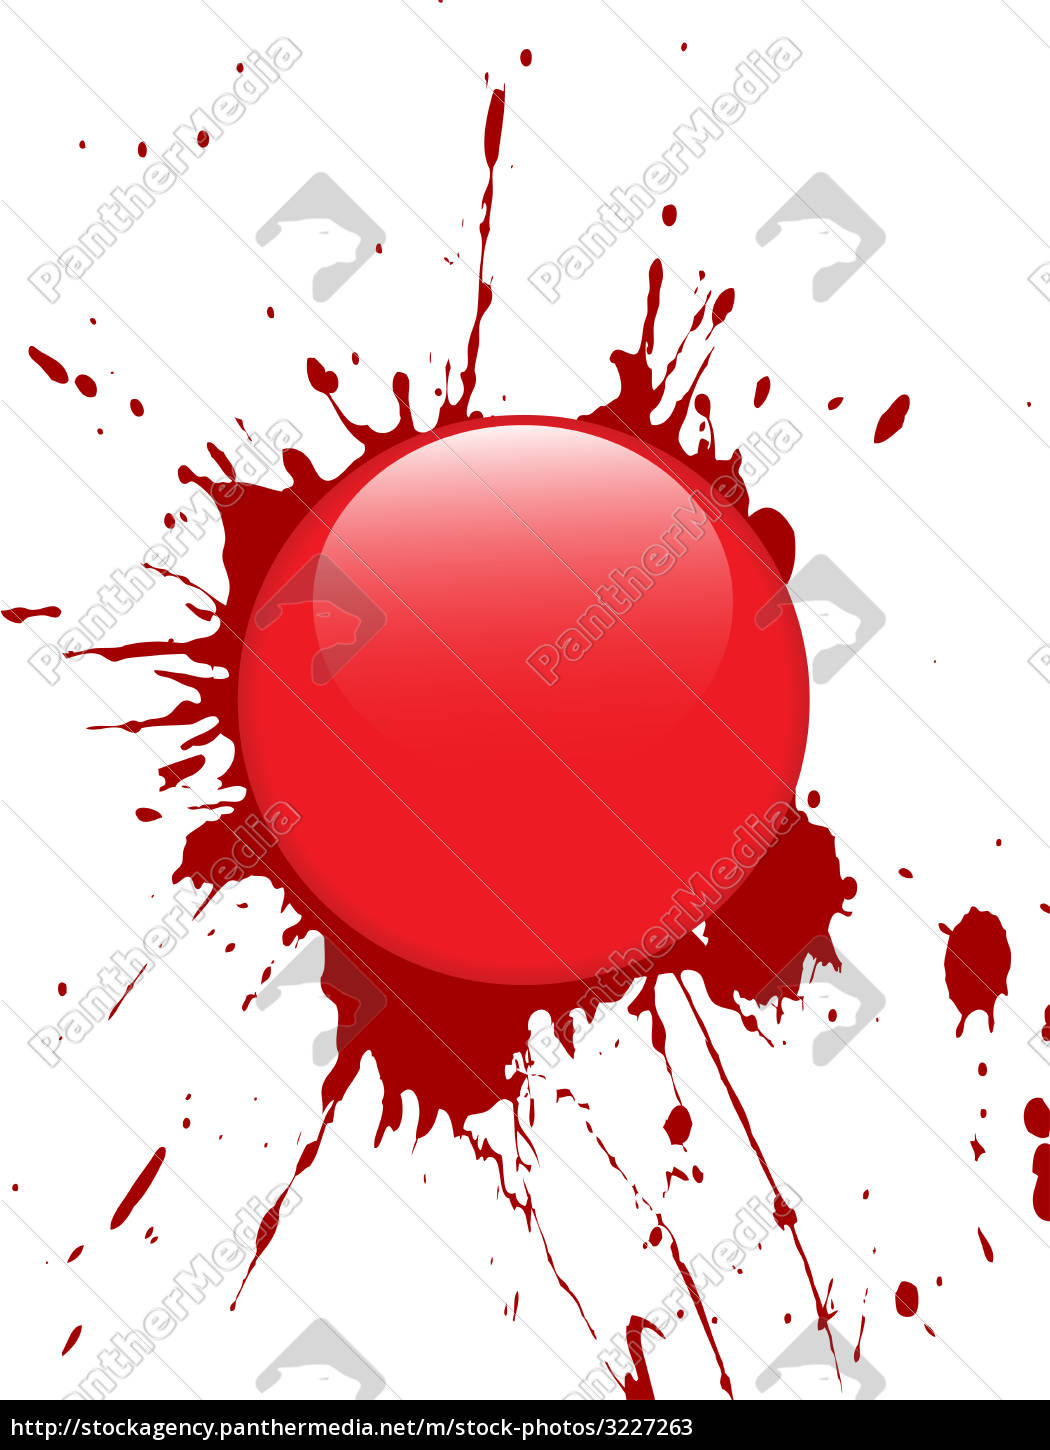 red, glass, button - 3227263